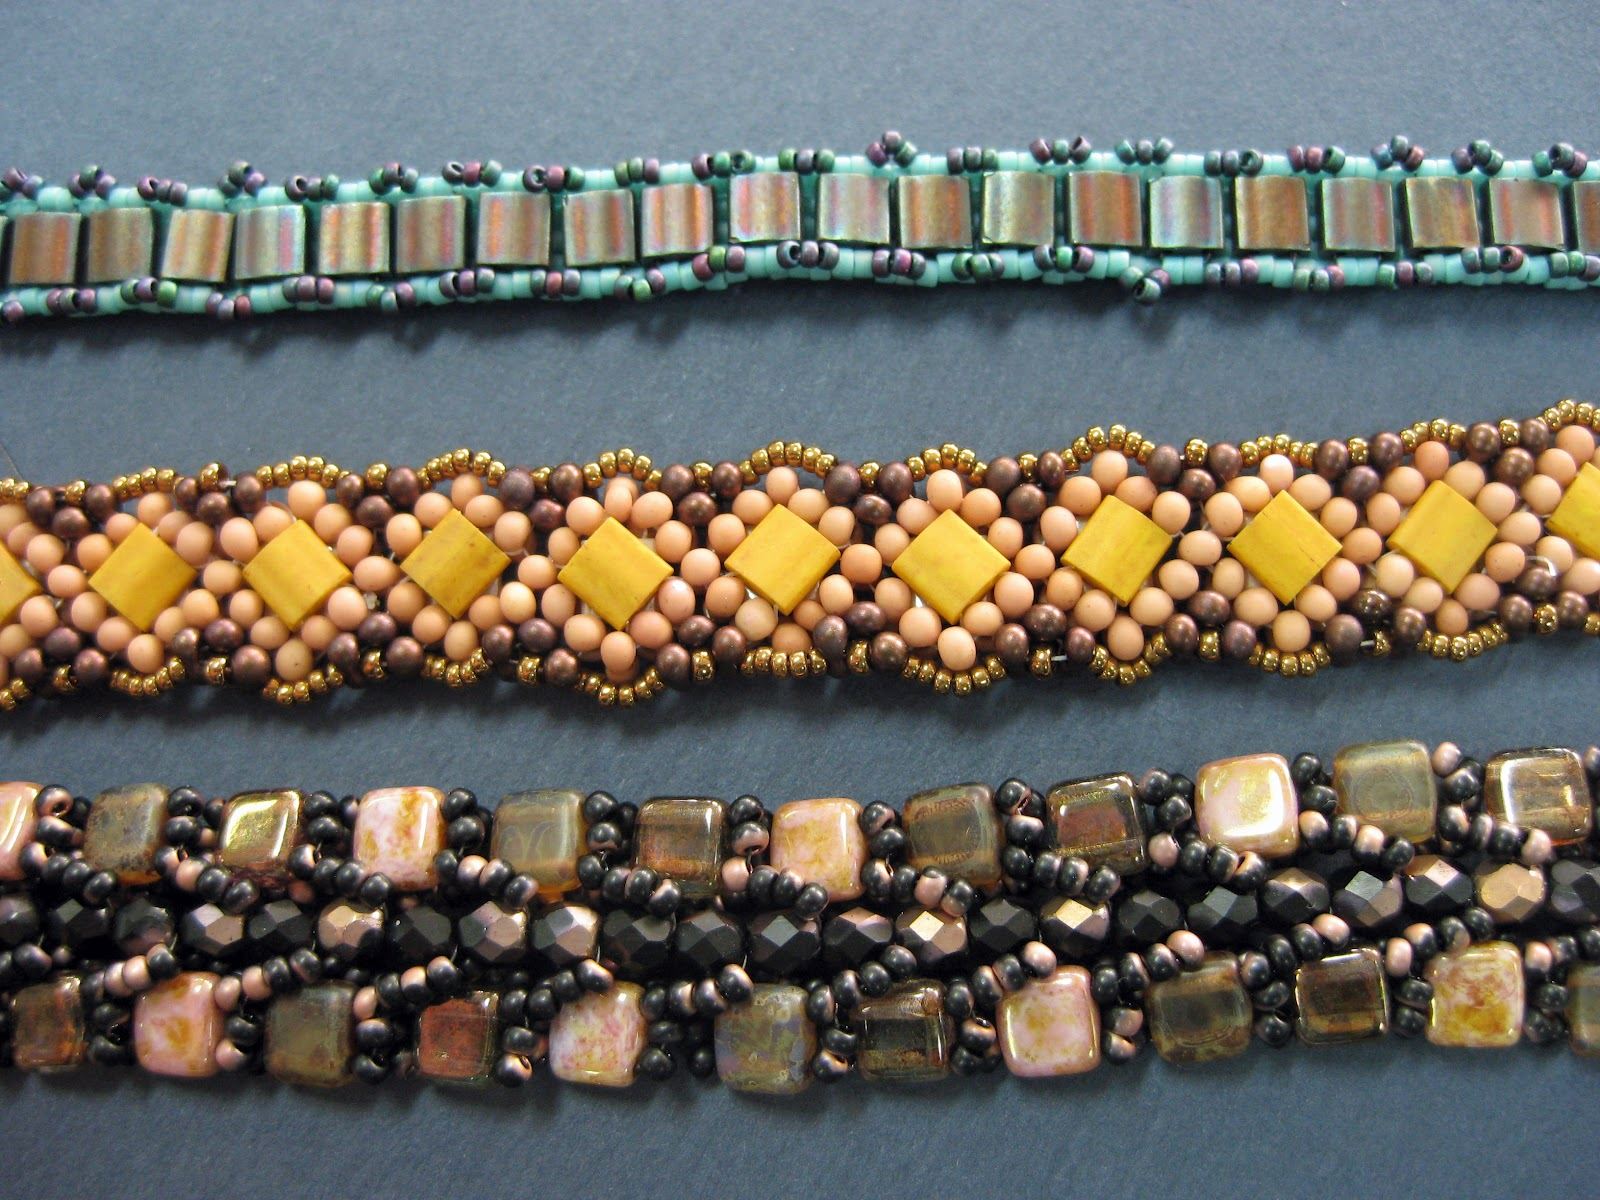 bead inspiration from bead classes